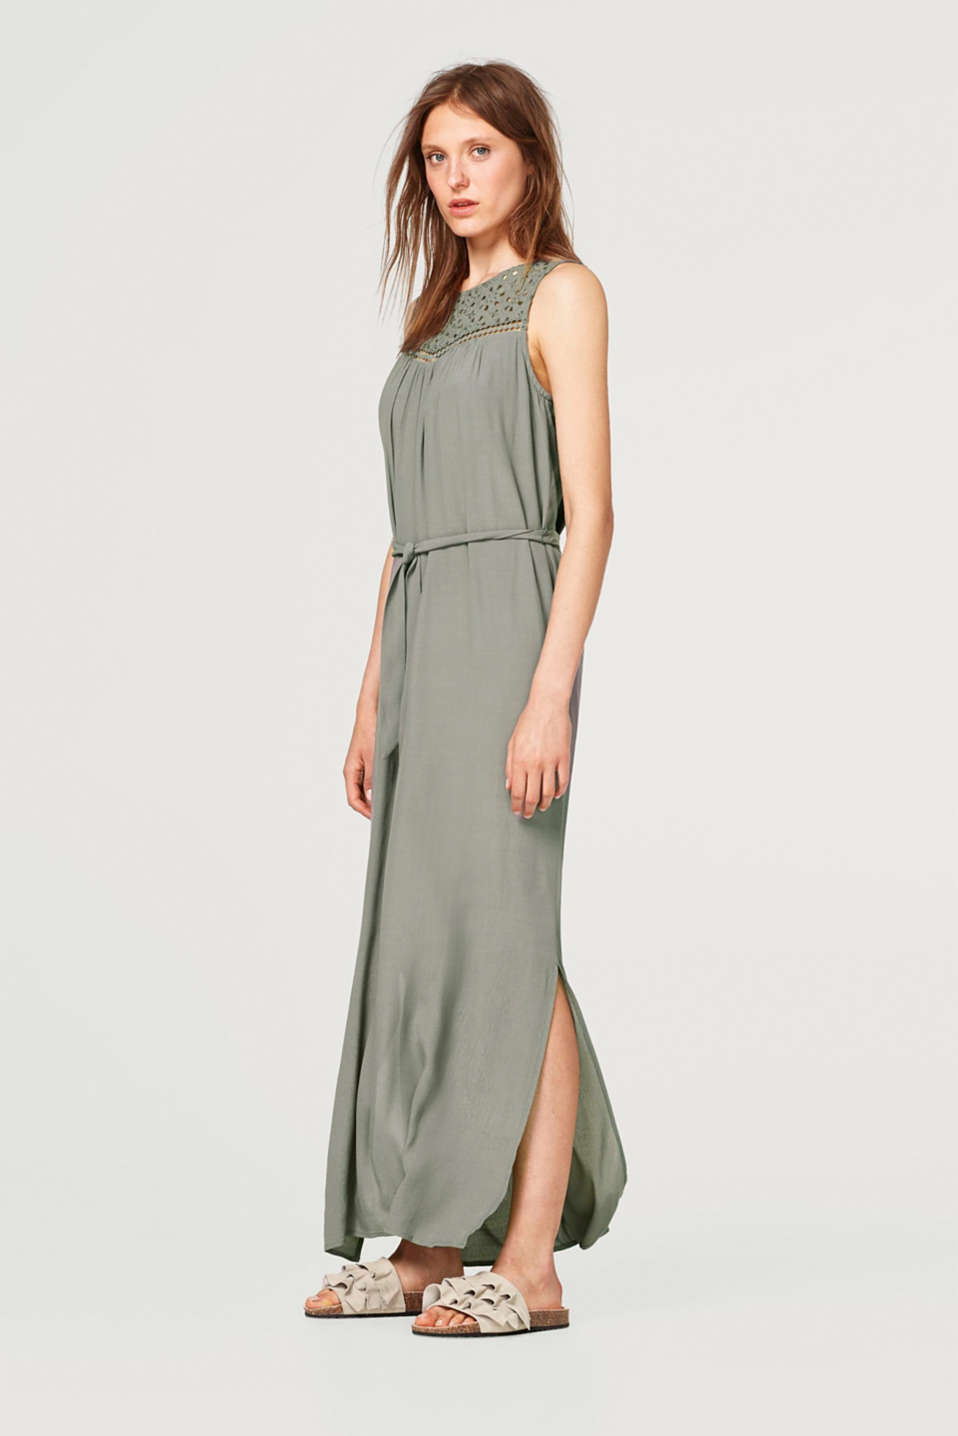 Lightweight crêpe maxi dress with elegant broderie anglaise